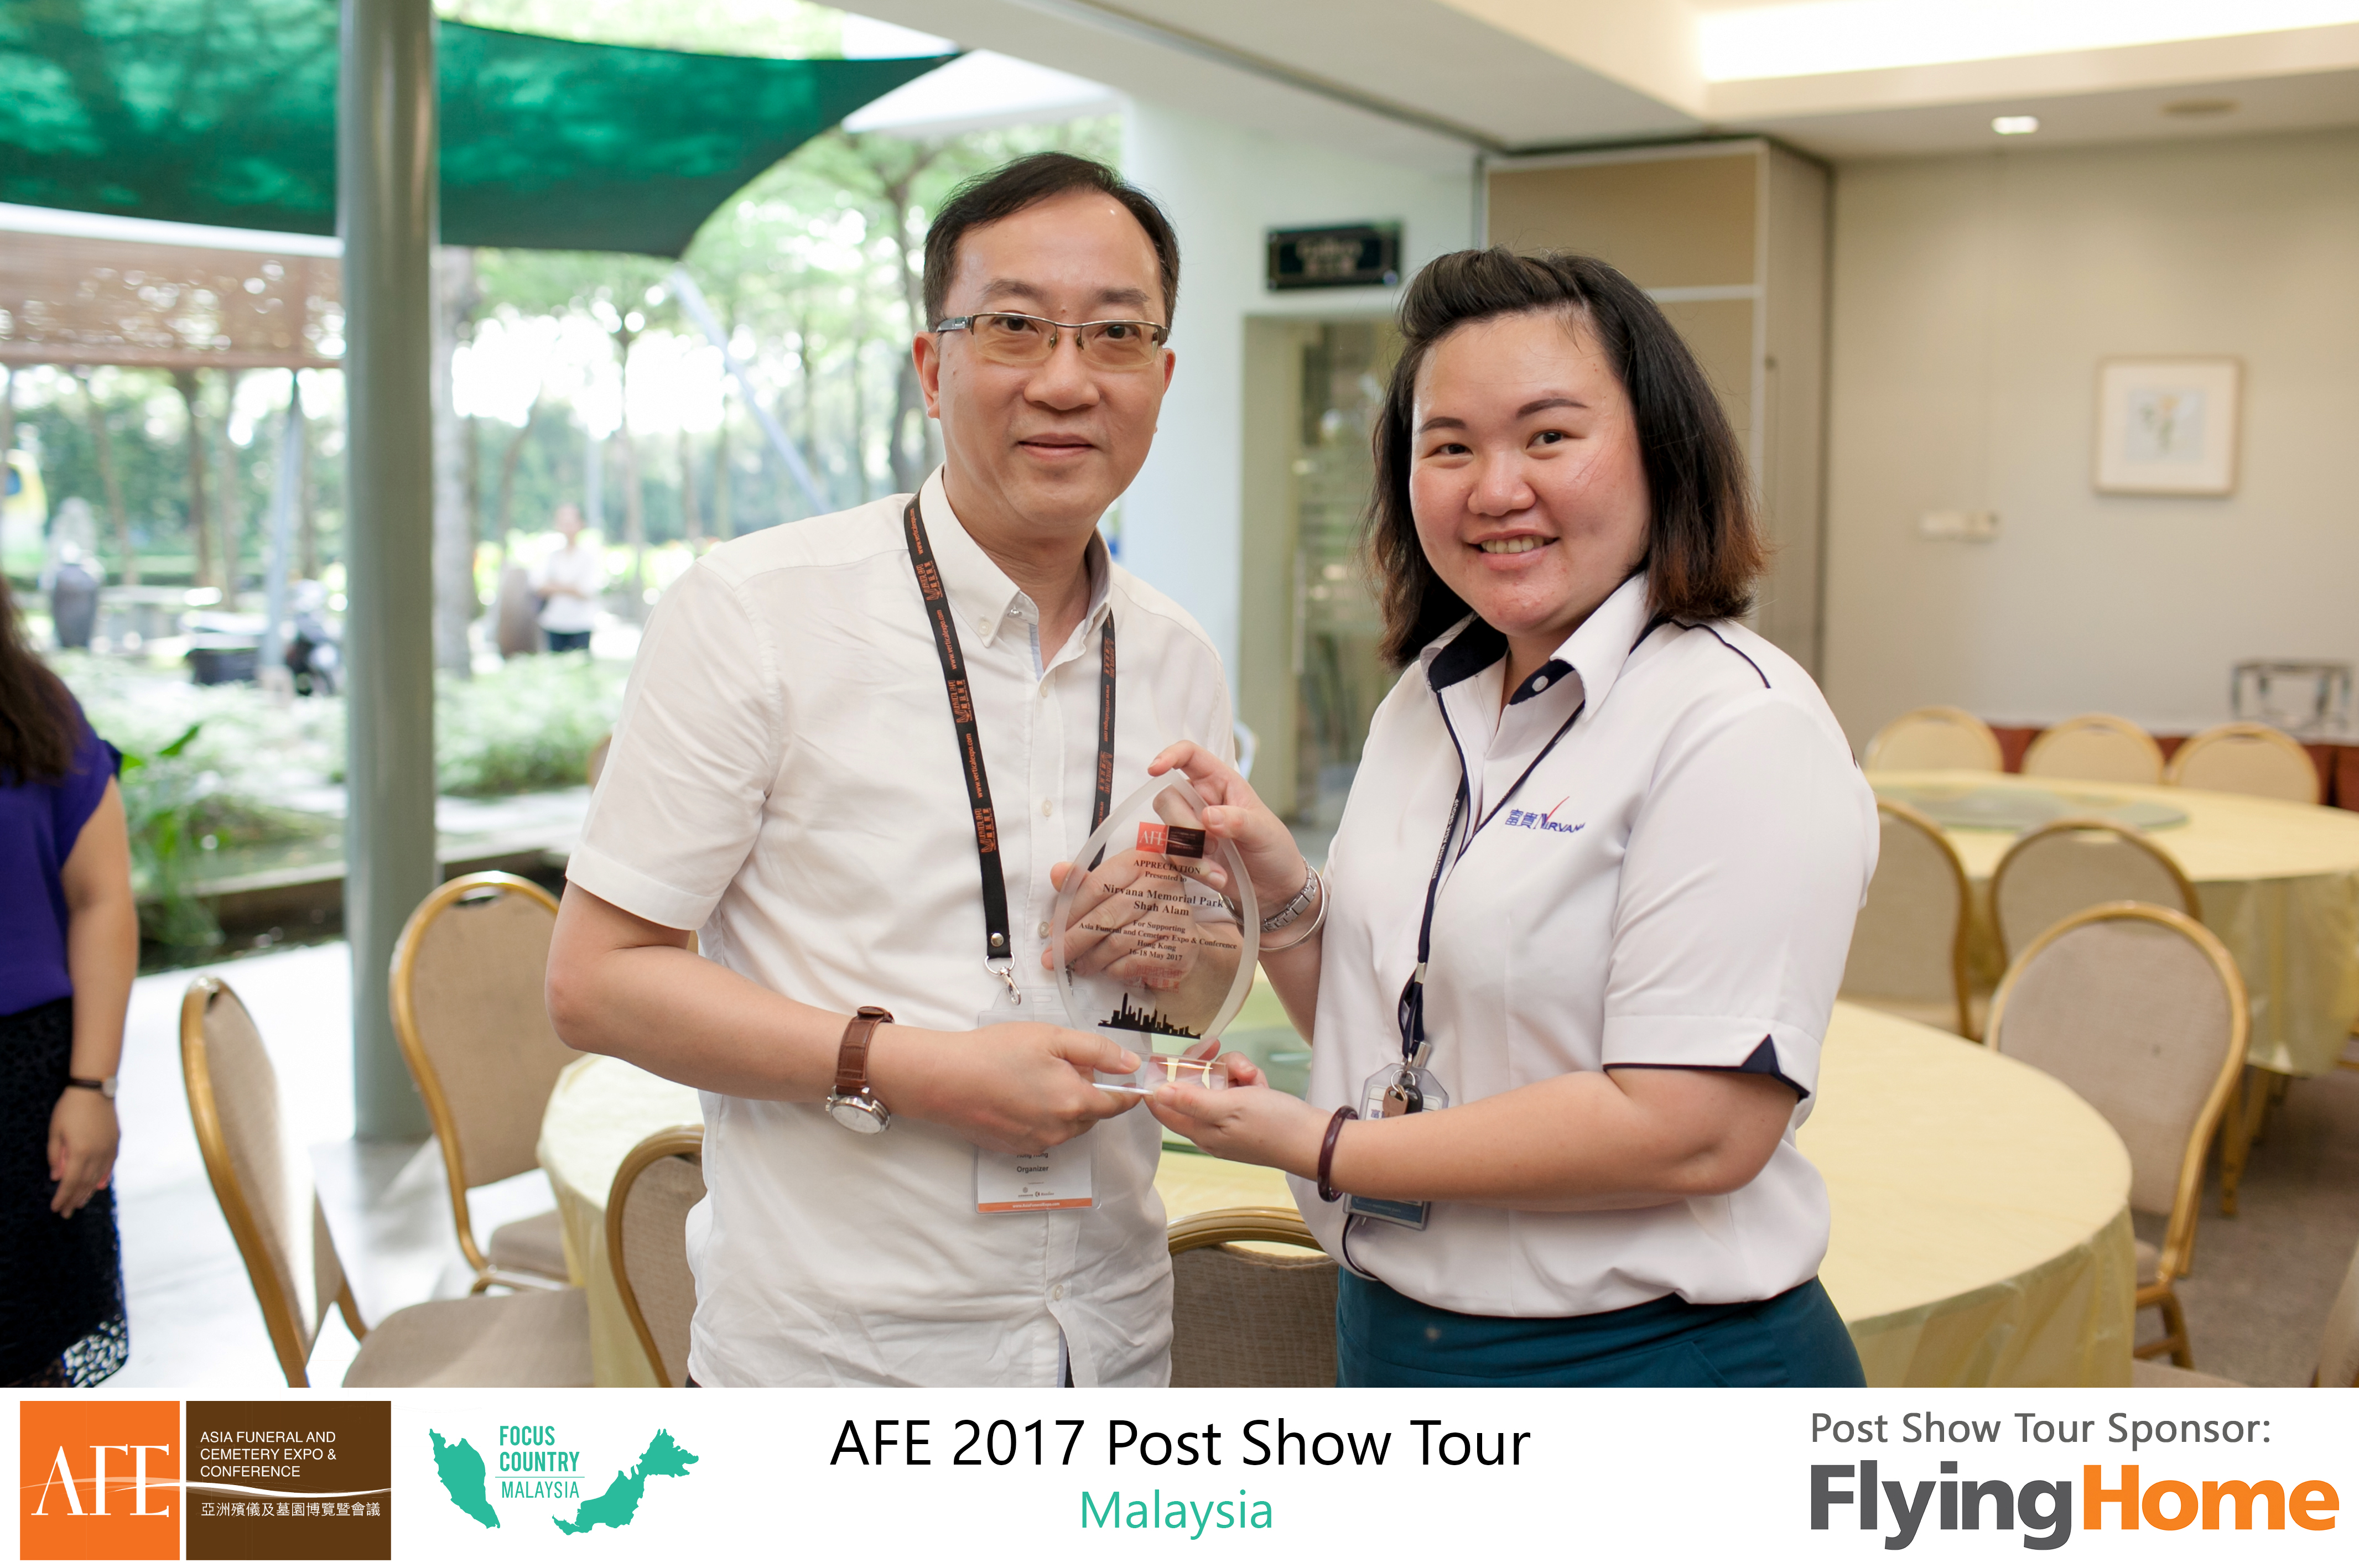 AFE Post Show Tour 2017 Day 2 - 81